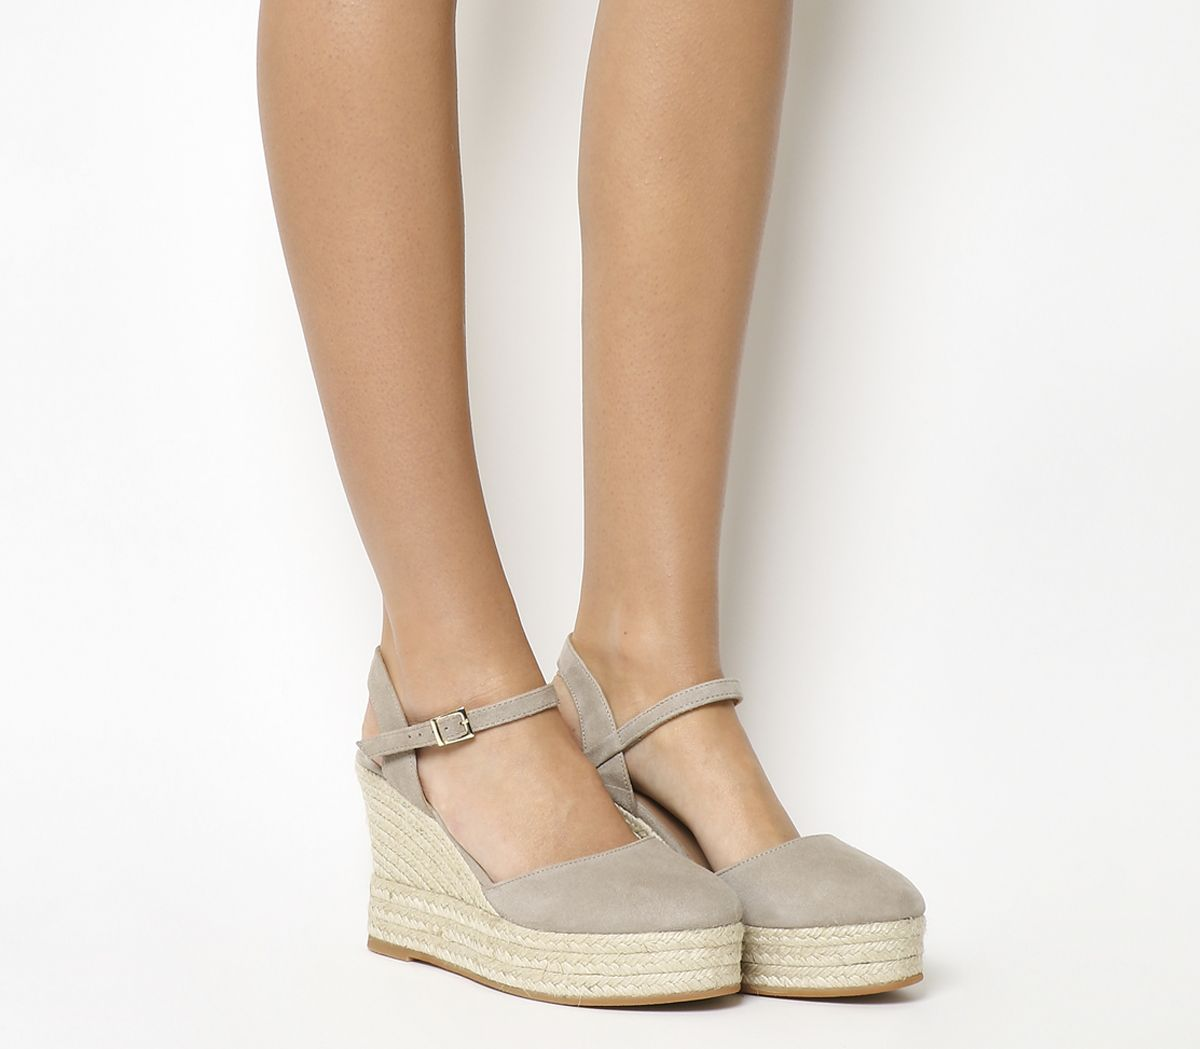 43515263bc44 Gaimo for OFFICE Hero Platform Wedges Sand Suede - Wedges